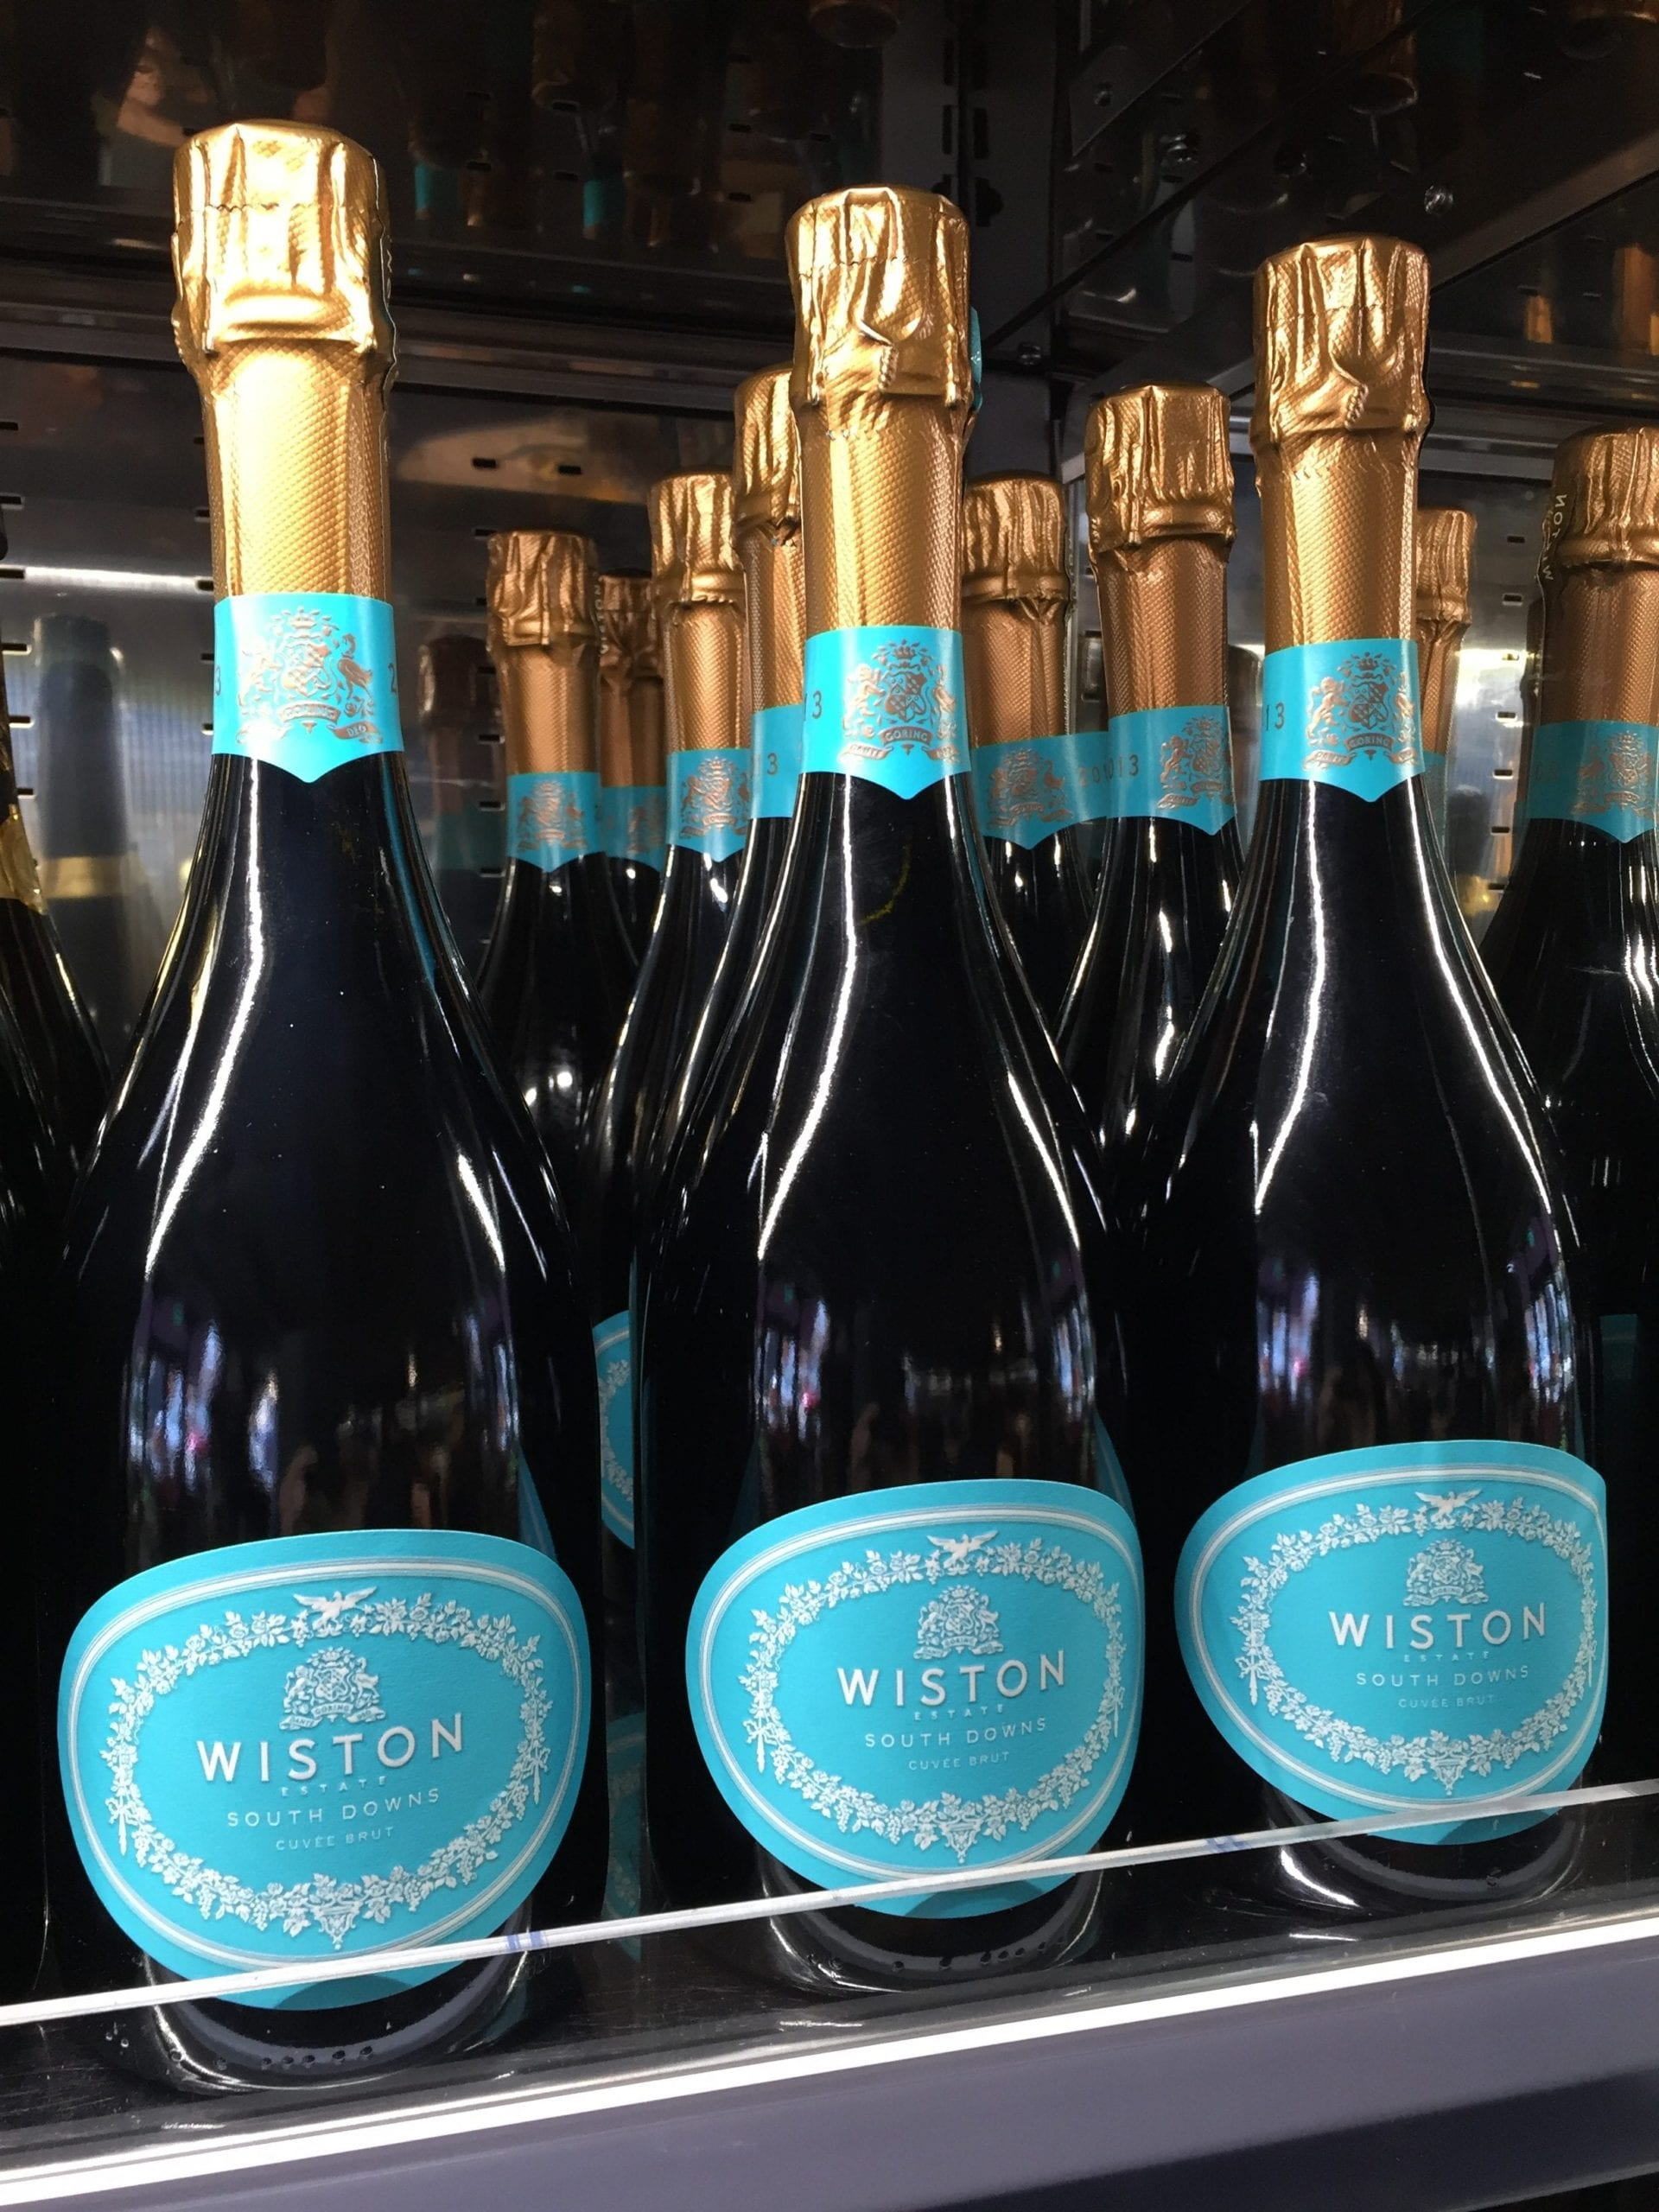 Wiston Estate Cuvée Brut 2013, Traditional Method, West Sussex